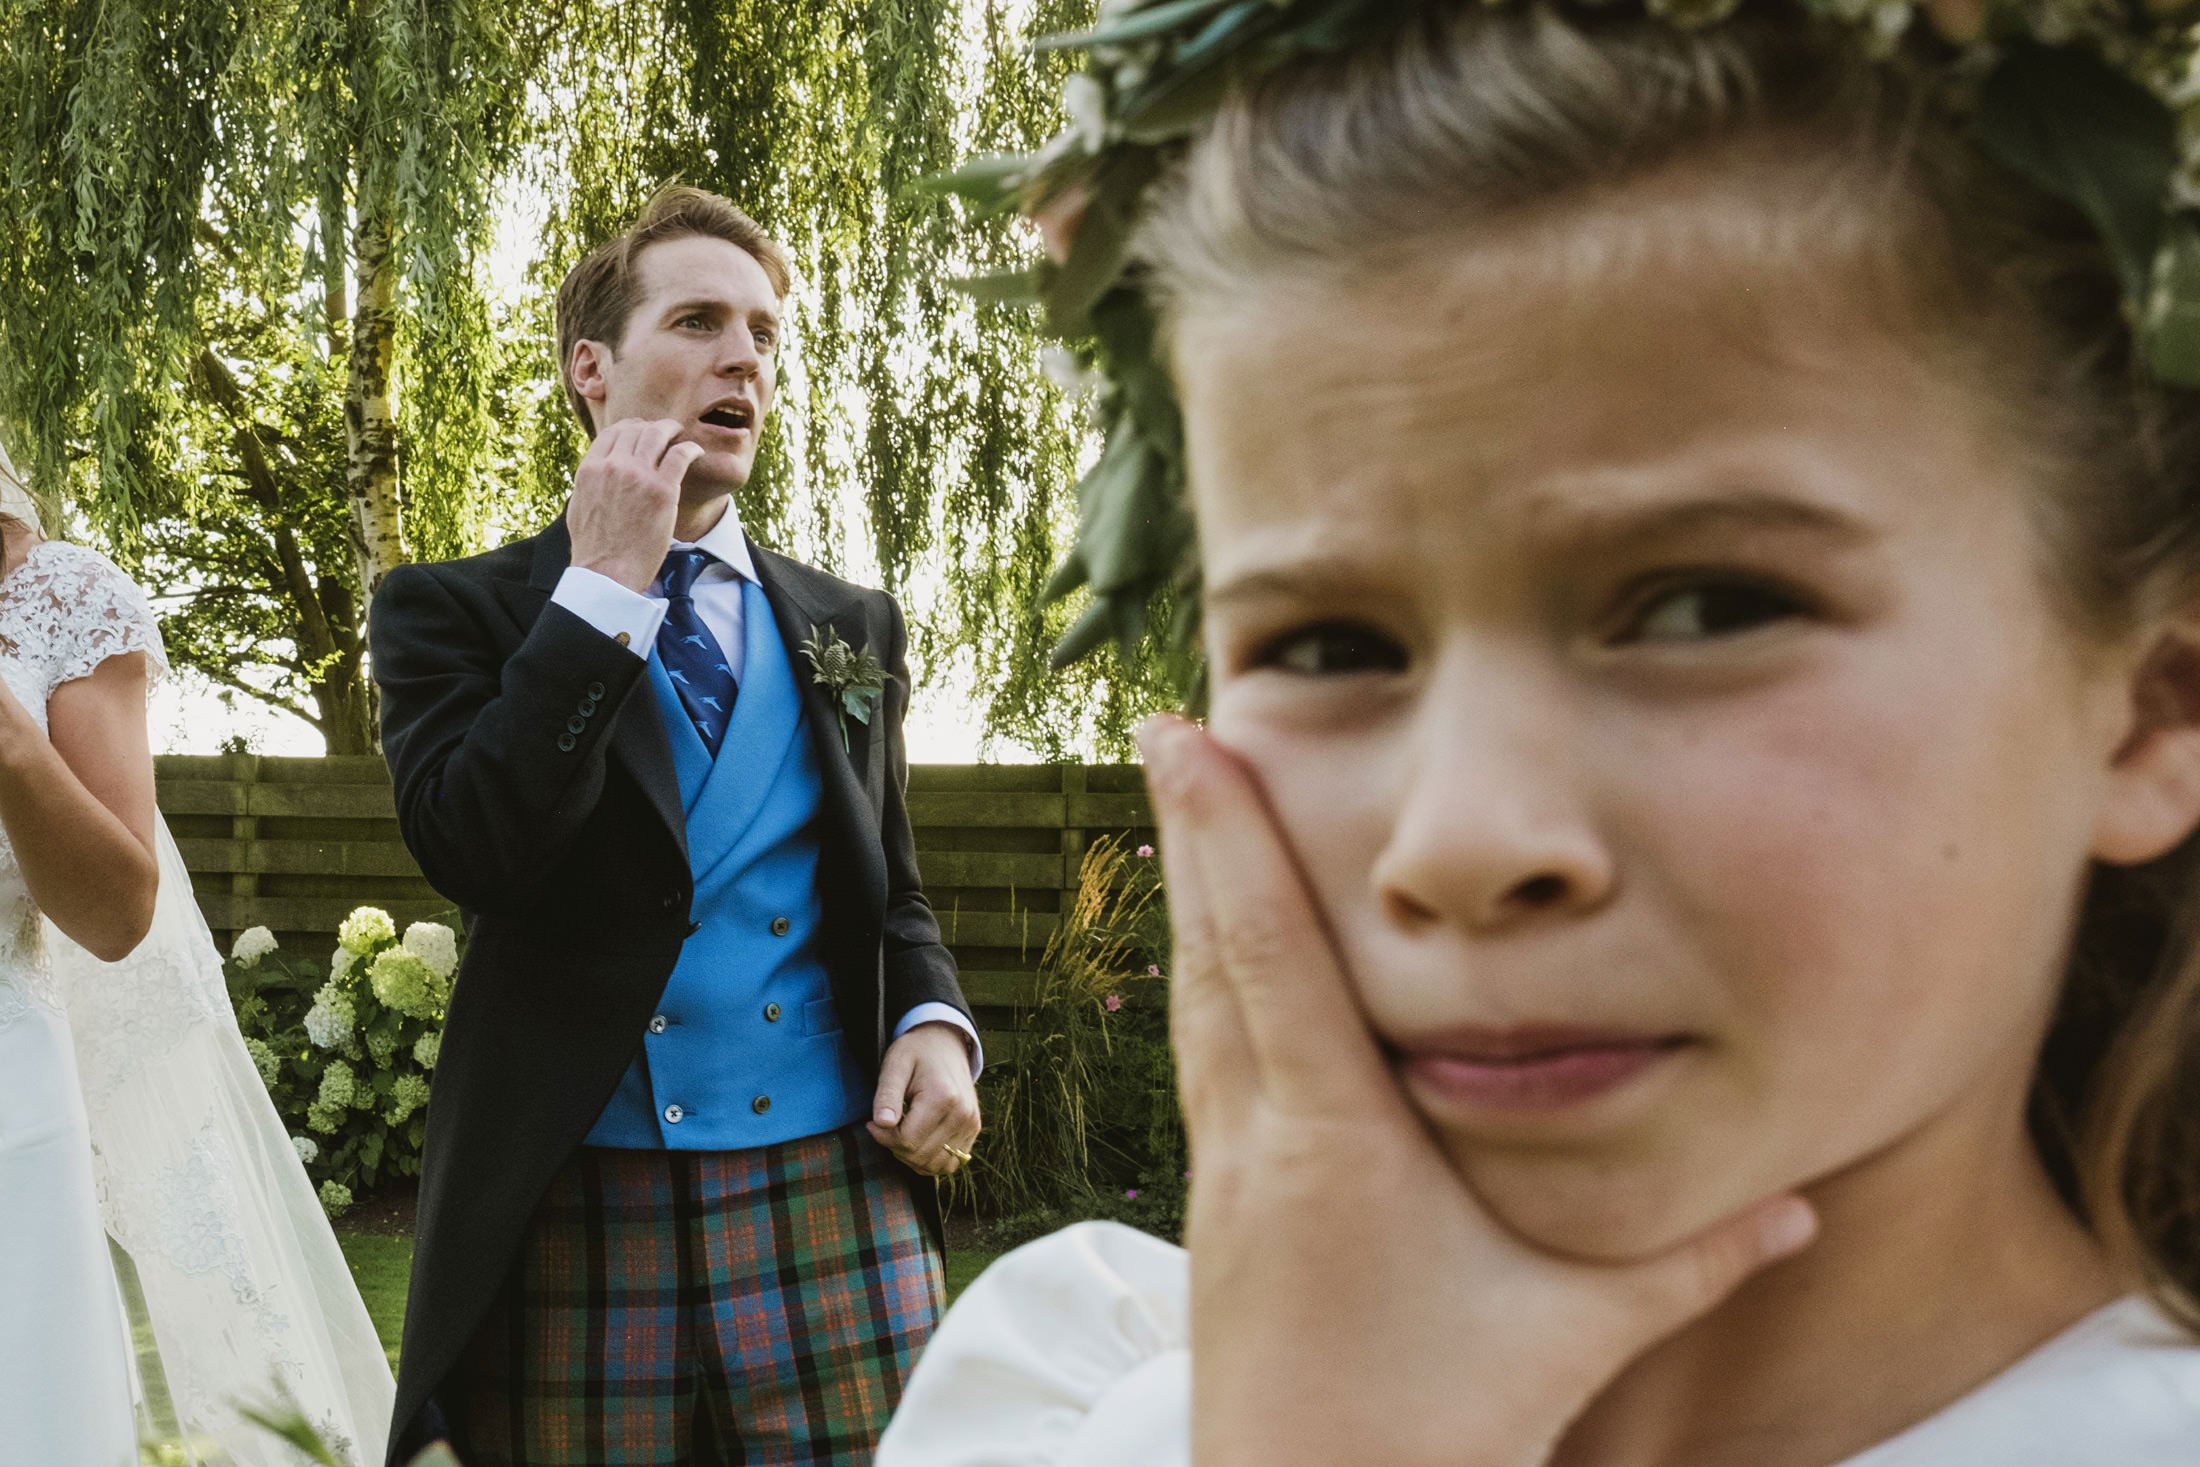 flower girl and groom both with hands to face